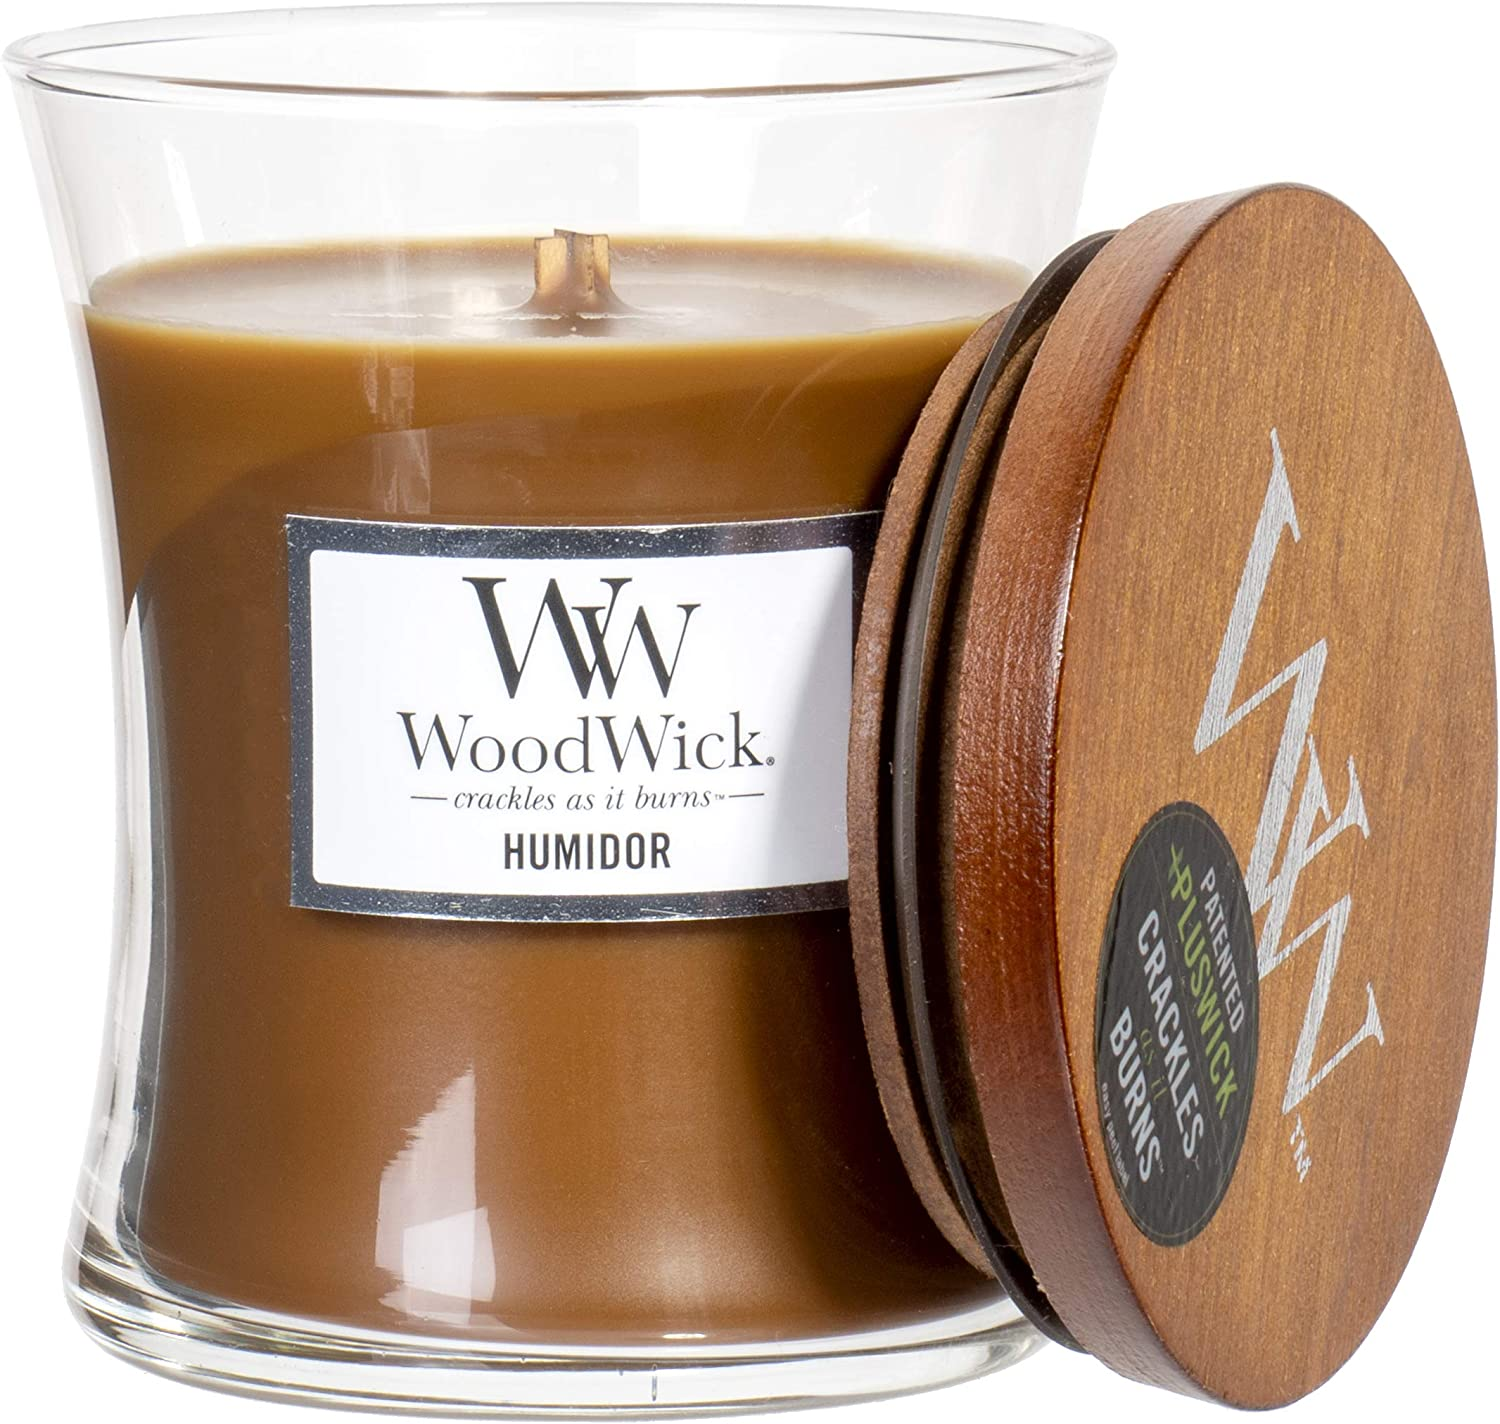 WoodWick Humidor Scented Hourglass Crackling Wooden Wick Candle in Clear Glass Jar, Medium - 9.7 Oz